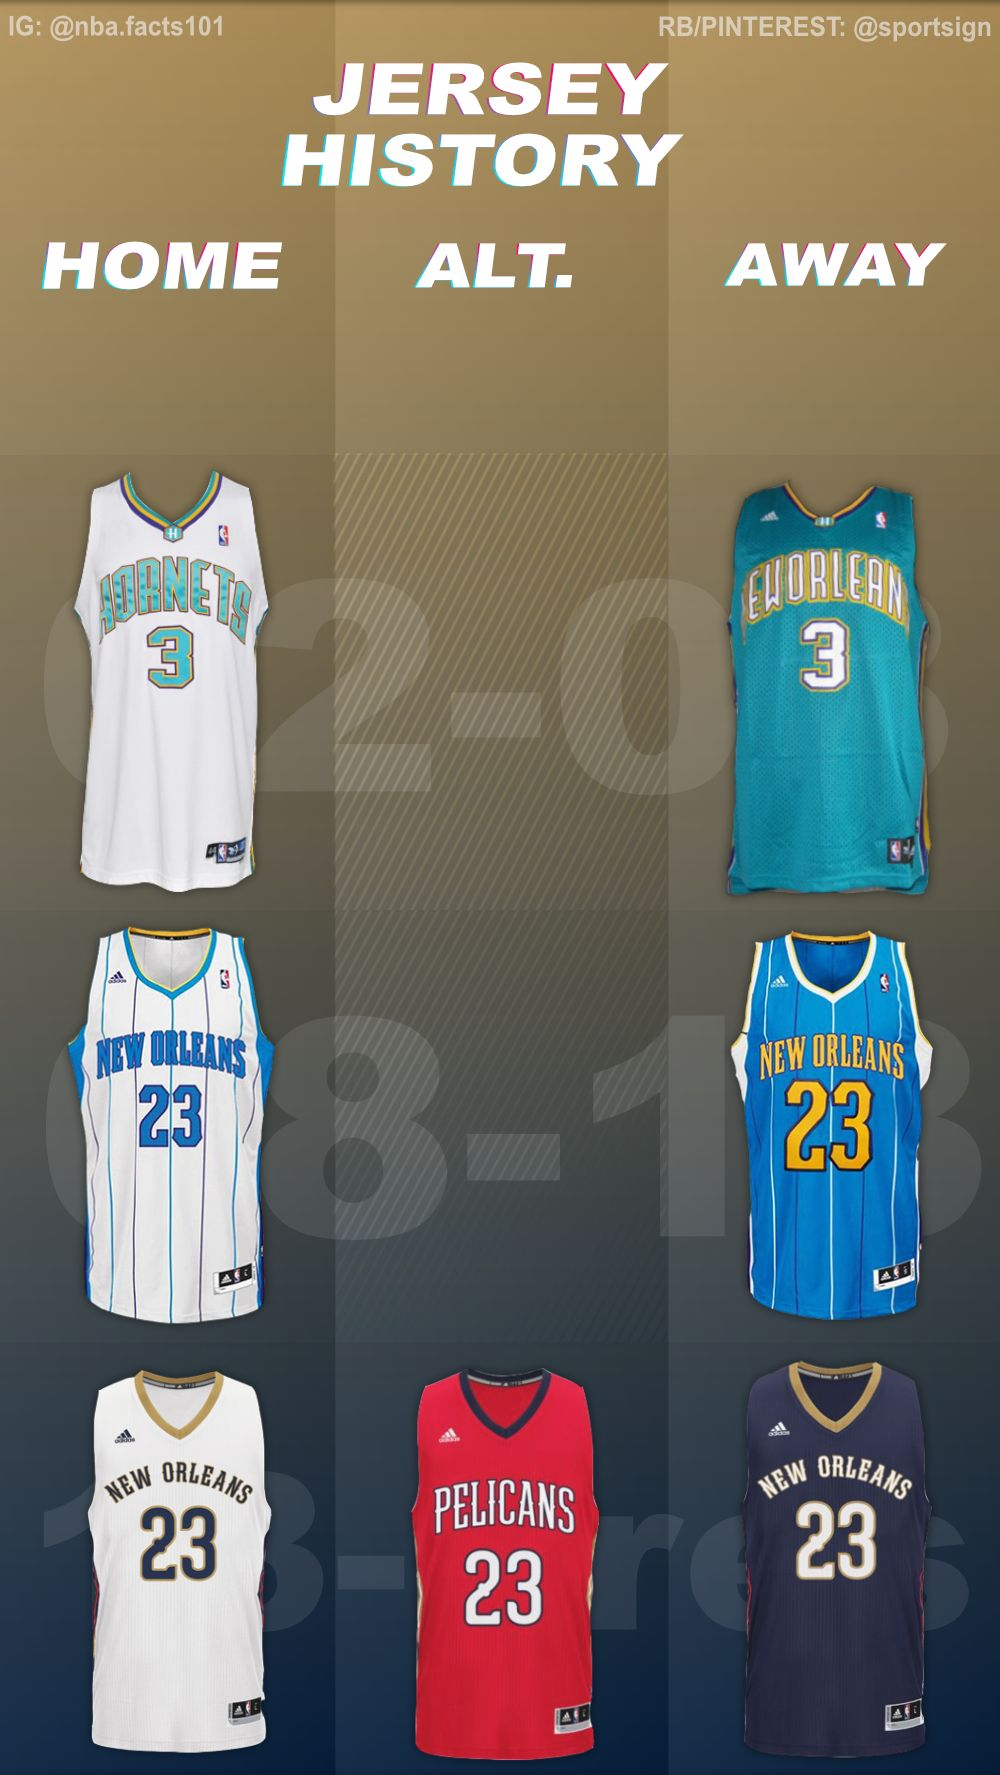 New Orleans Pelicans Jersey History Nba Basketball Teams New Orleans Pelicans Nba